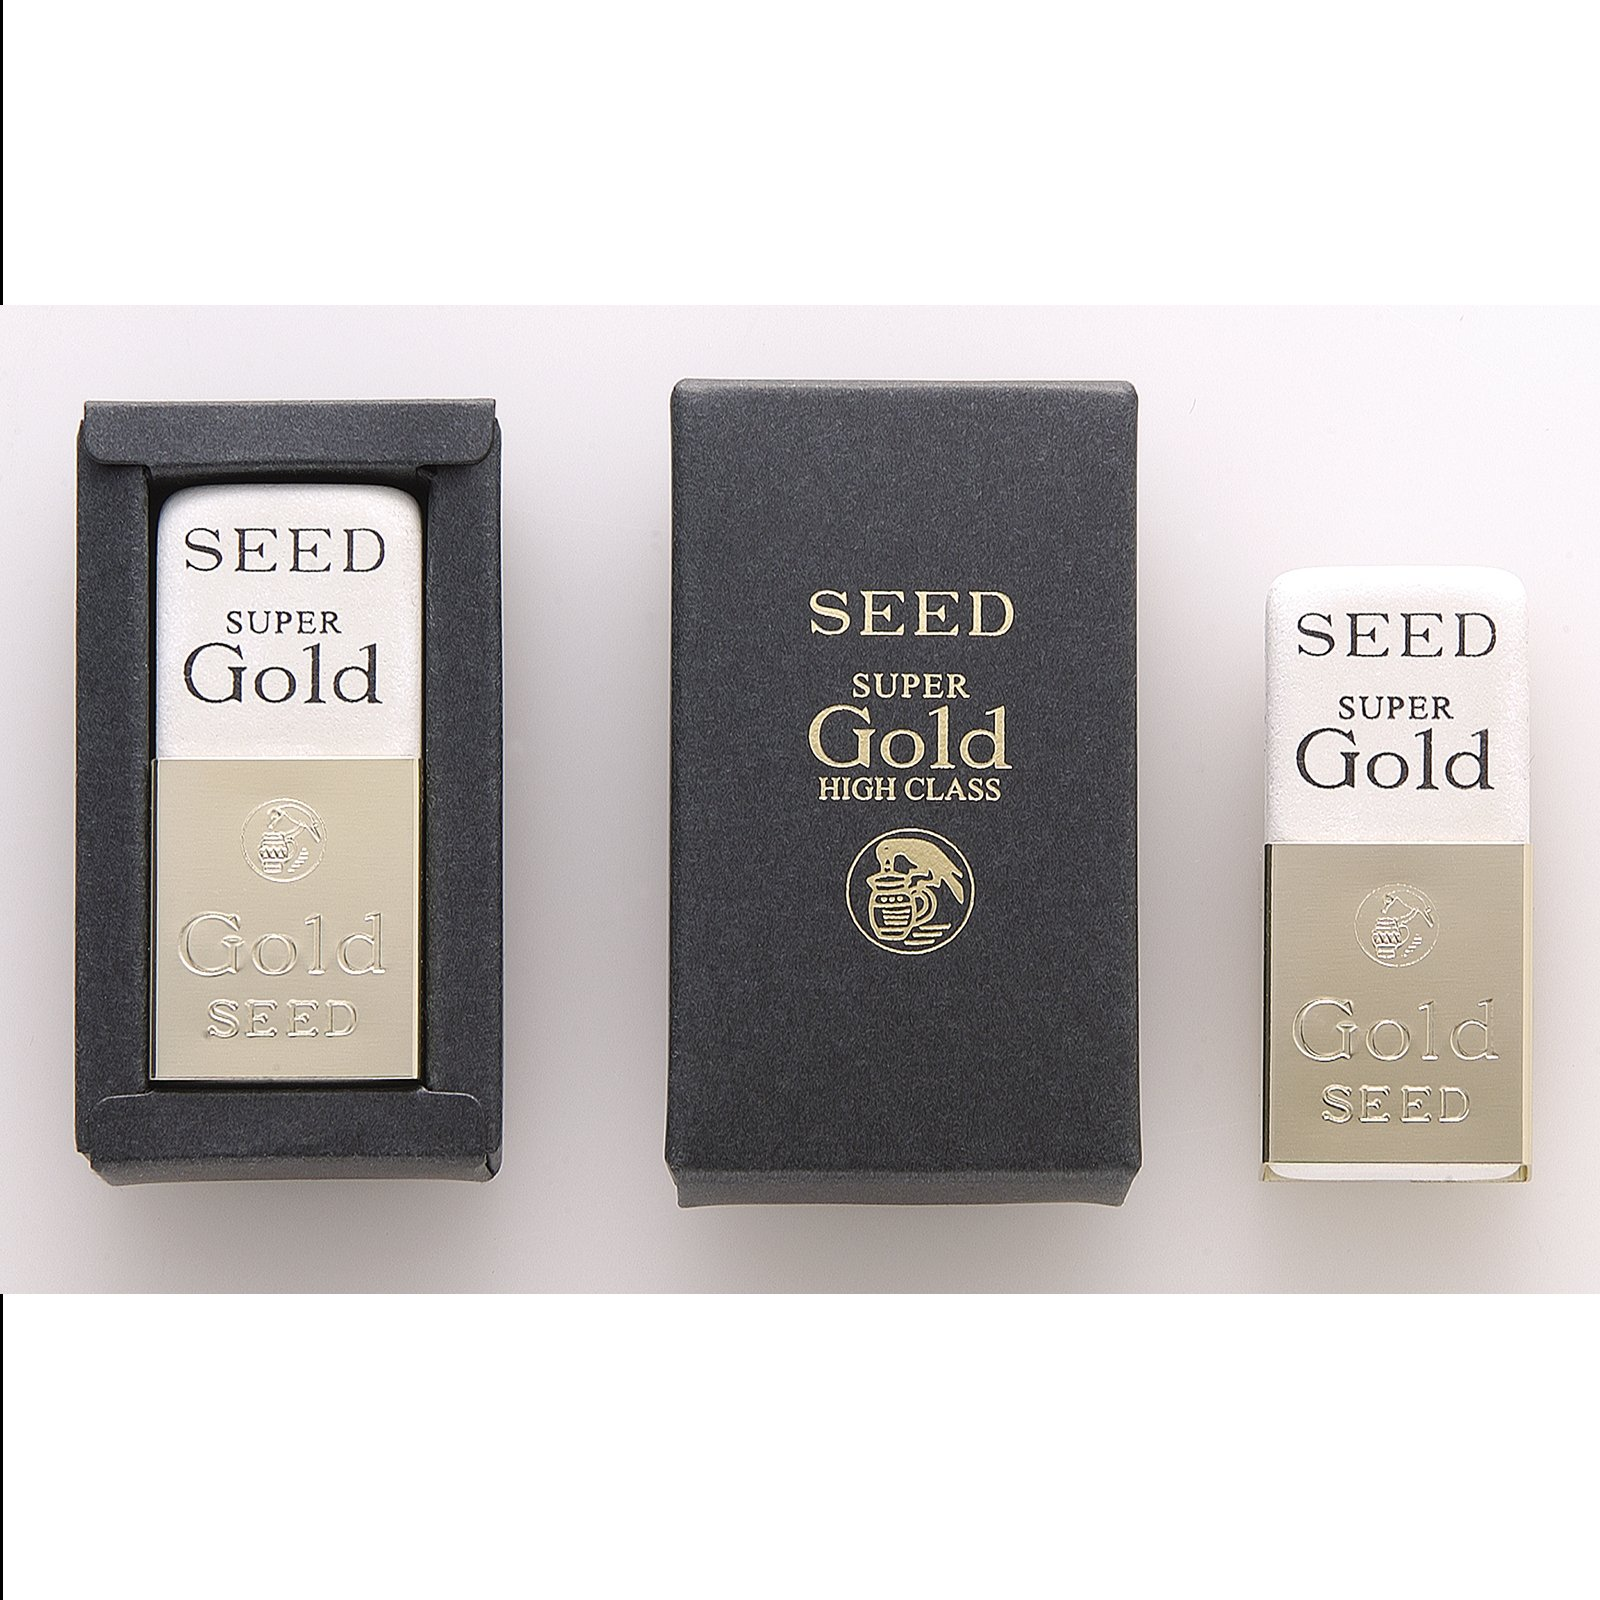 Seed high quality eraser Super Gold ER-M01-10P 10 pieces by SEED (Image #5)